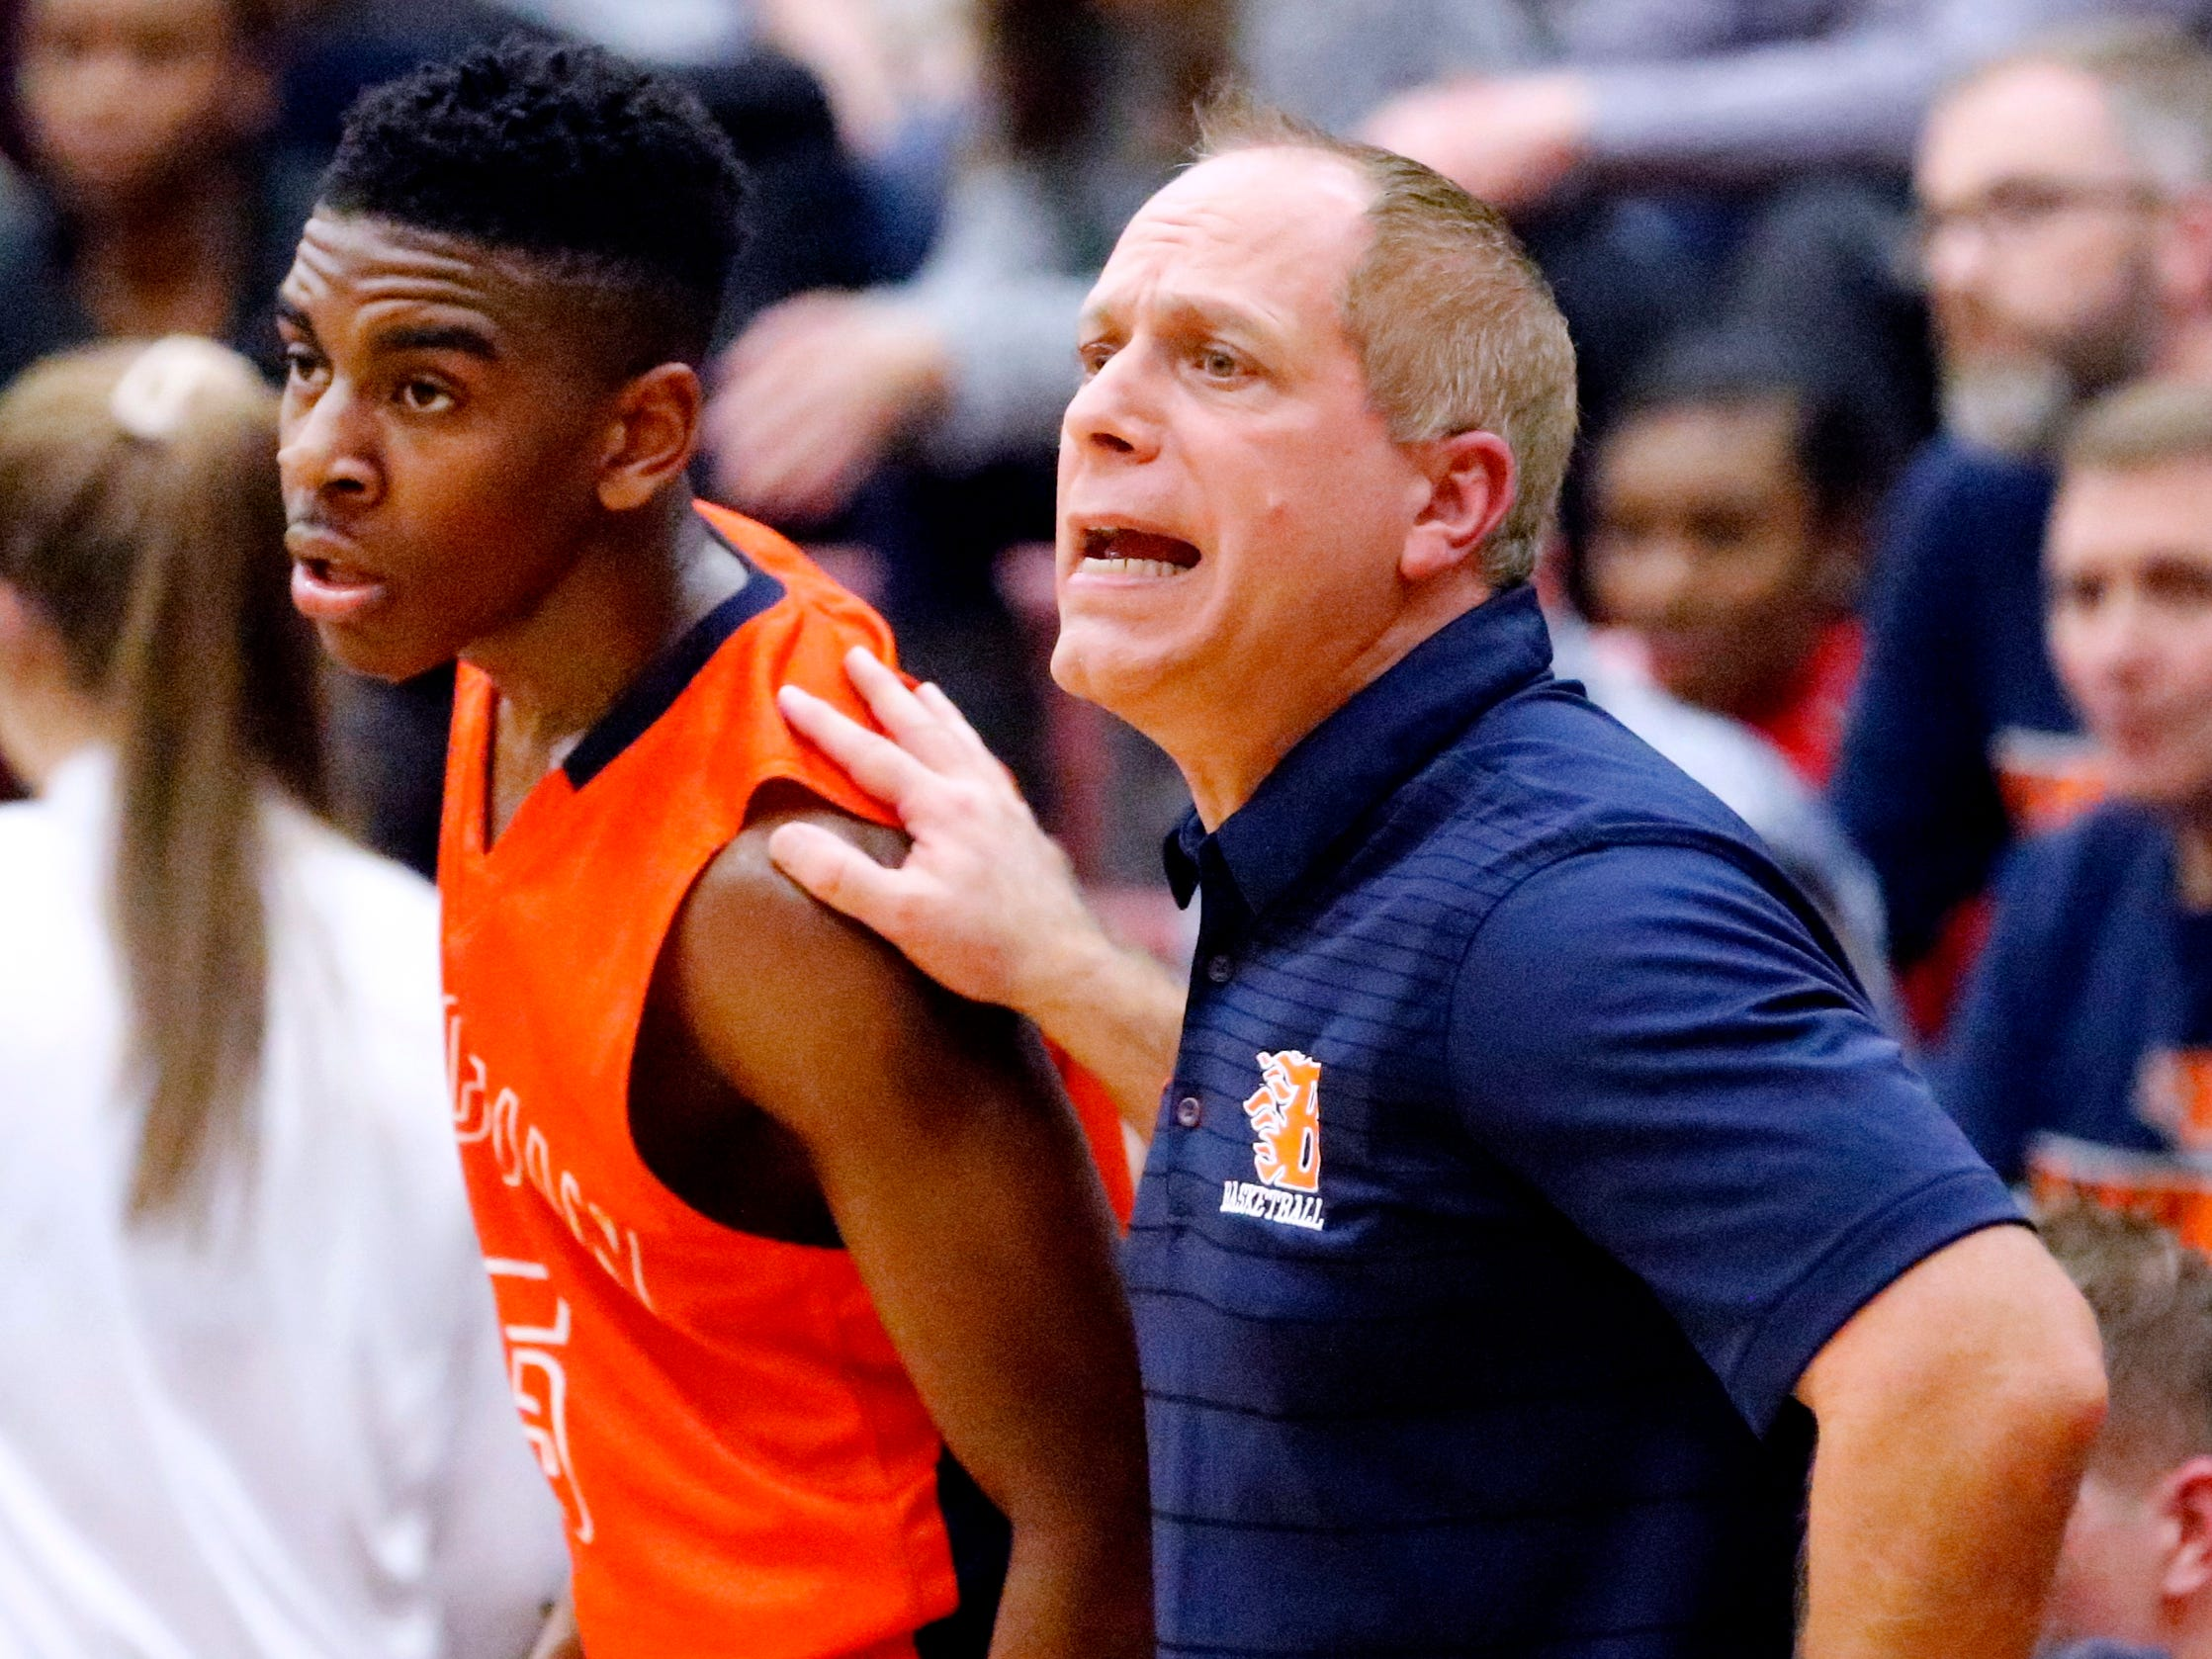 Blackman's head coach Barry Wortman stands next to Blackman's Jacquari Johnson (5) as he coaches on the sidelines on Tuesday Jan. 8, 2019 during the game against Riverdale.